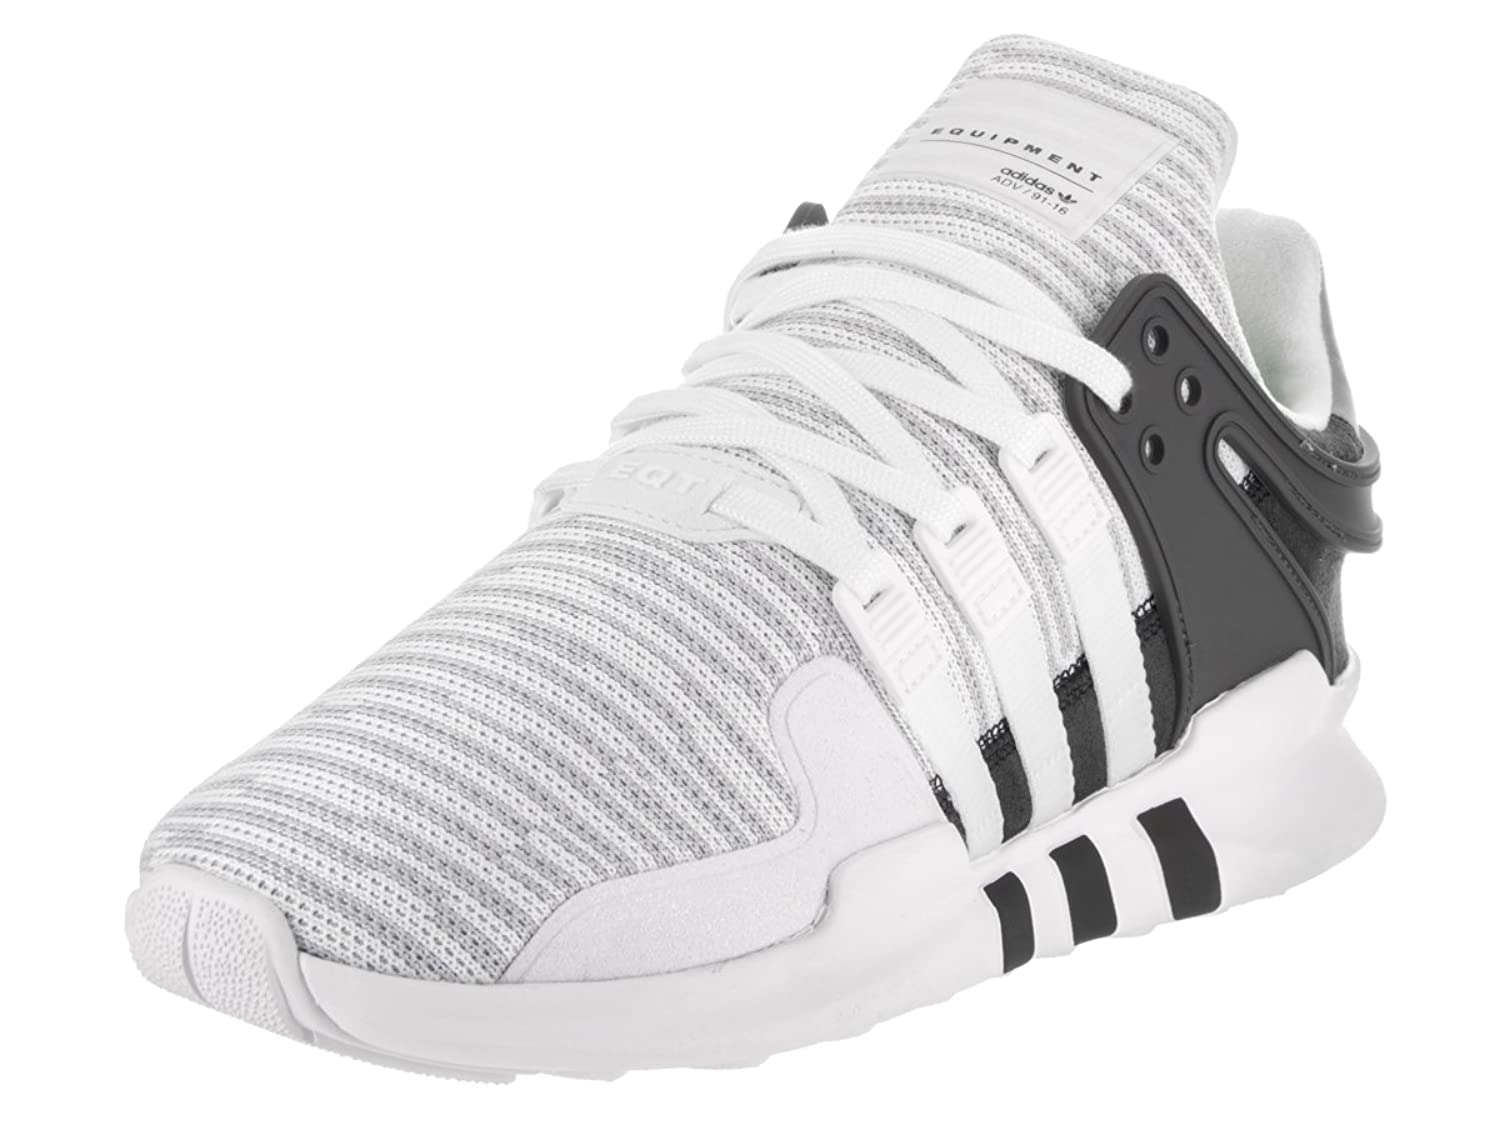 The adidas EQT Support RF Arrives In Solid Grey